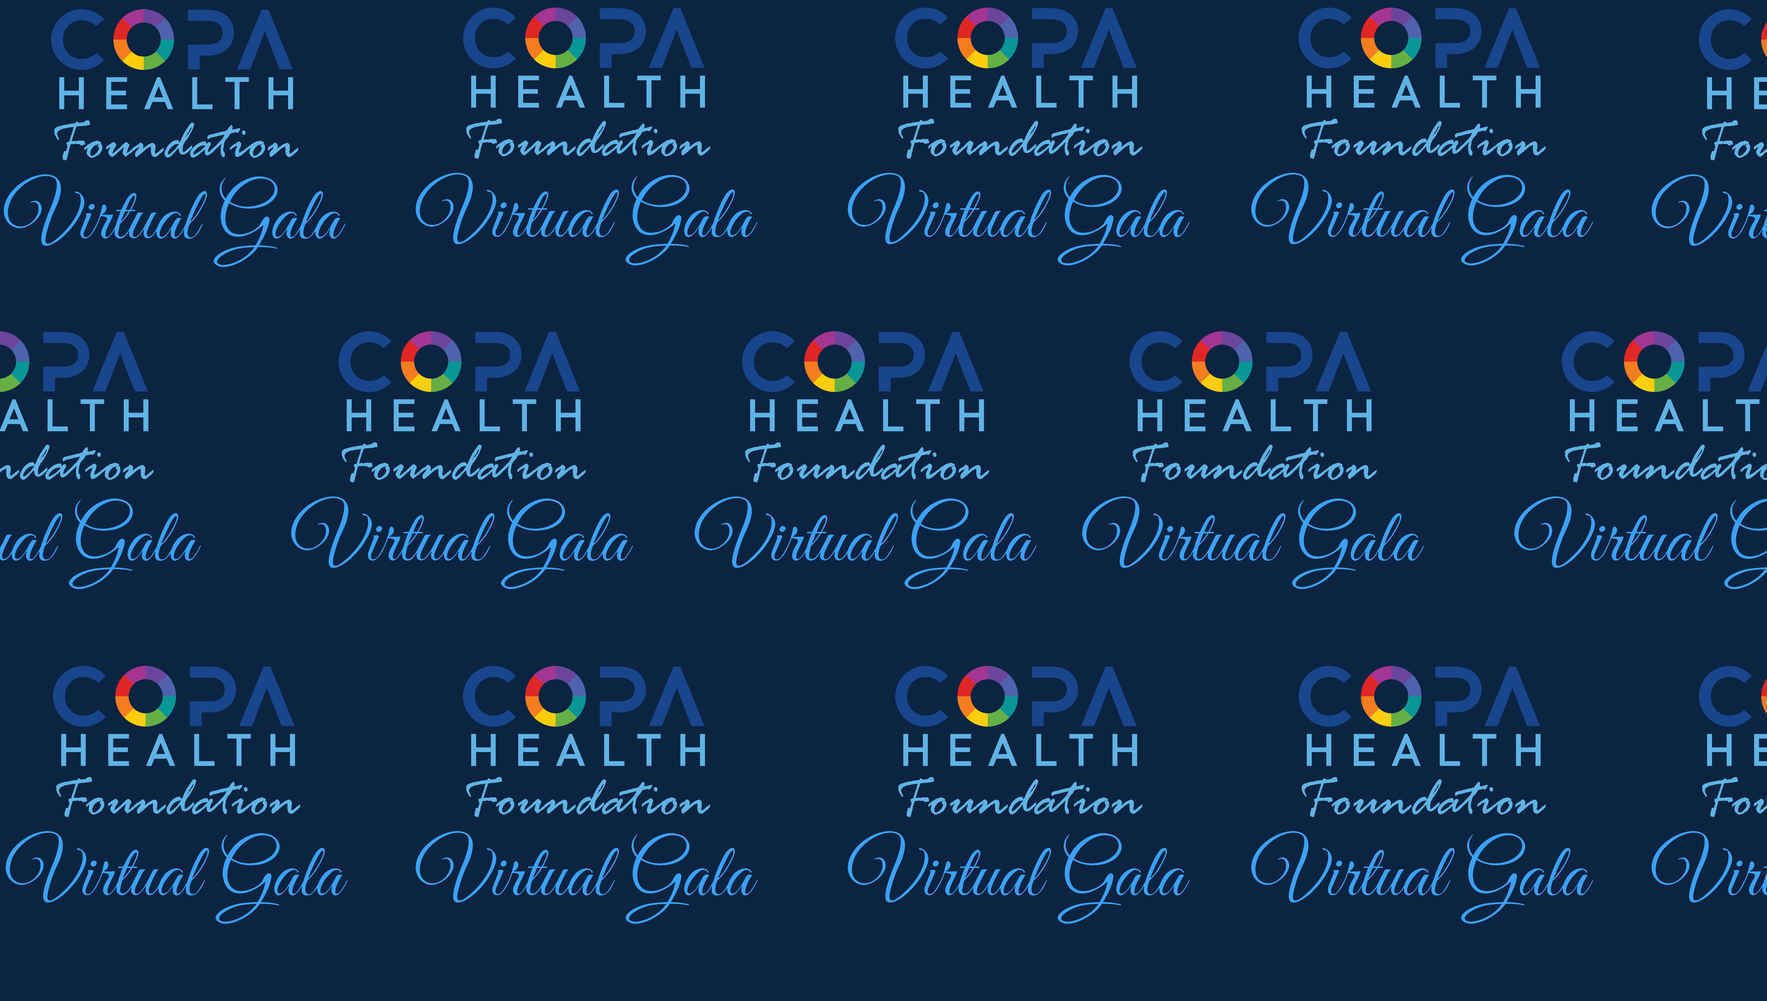 Donations will support Copa Health Programs image